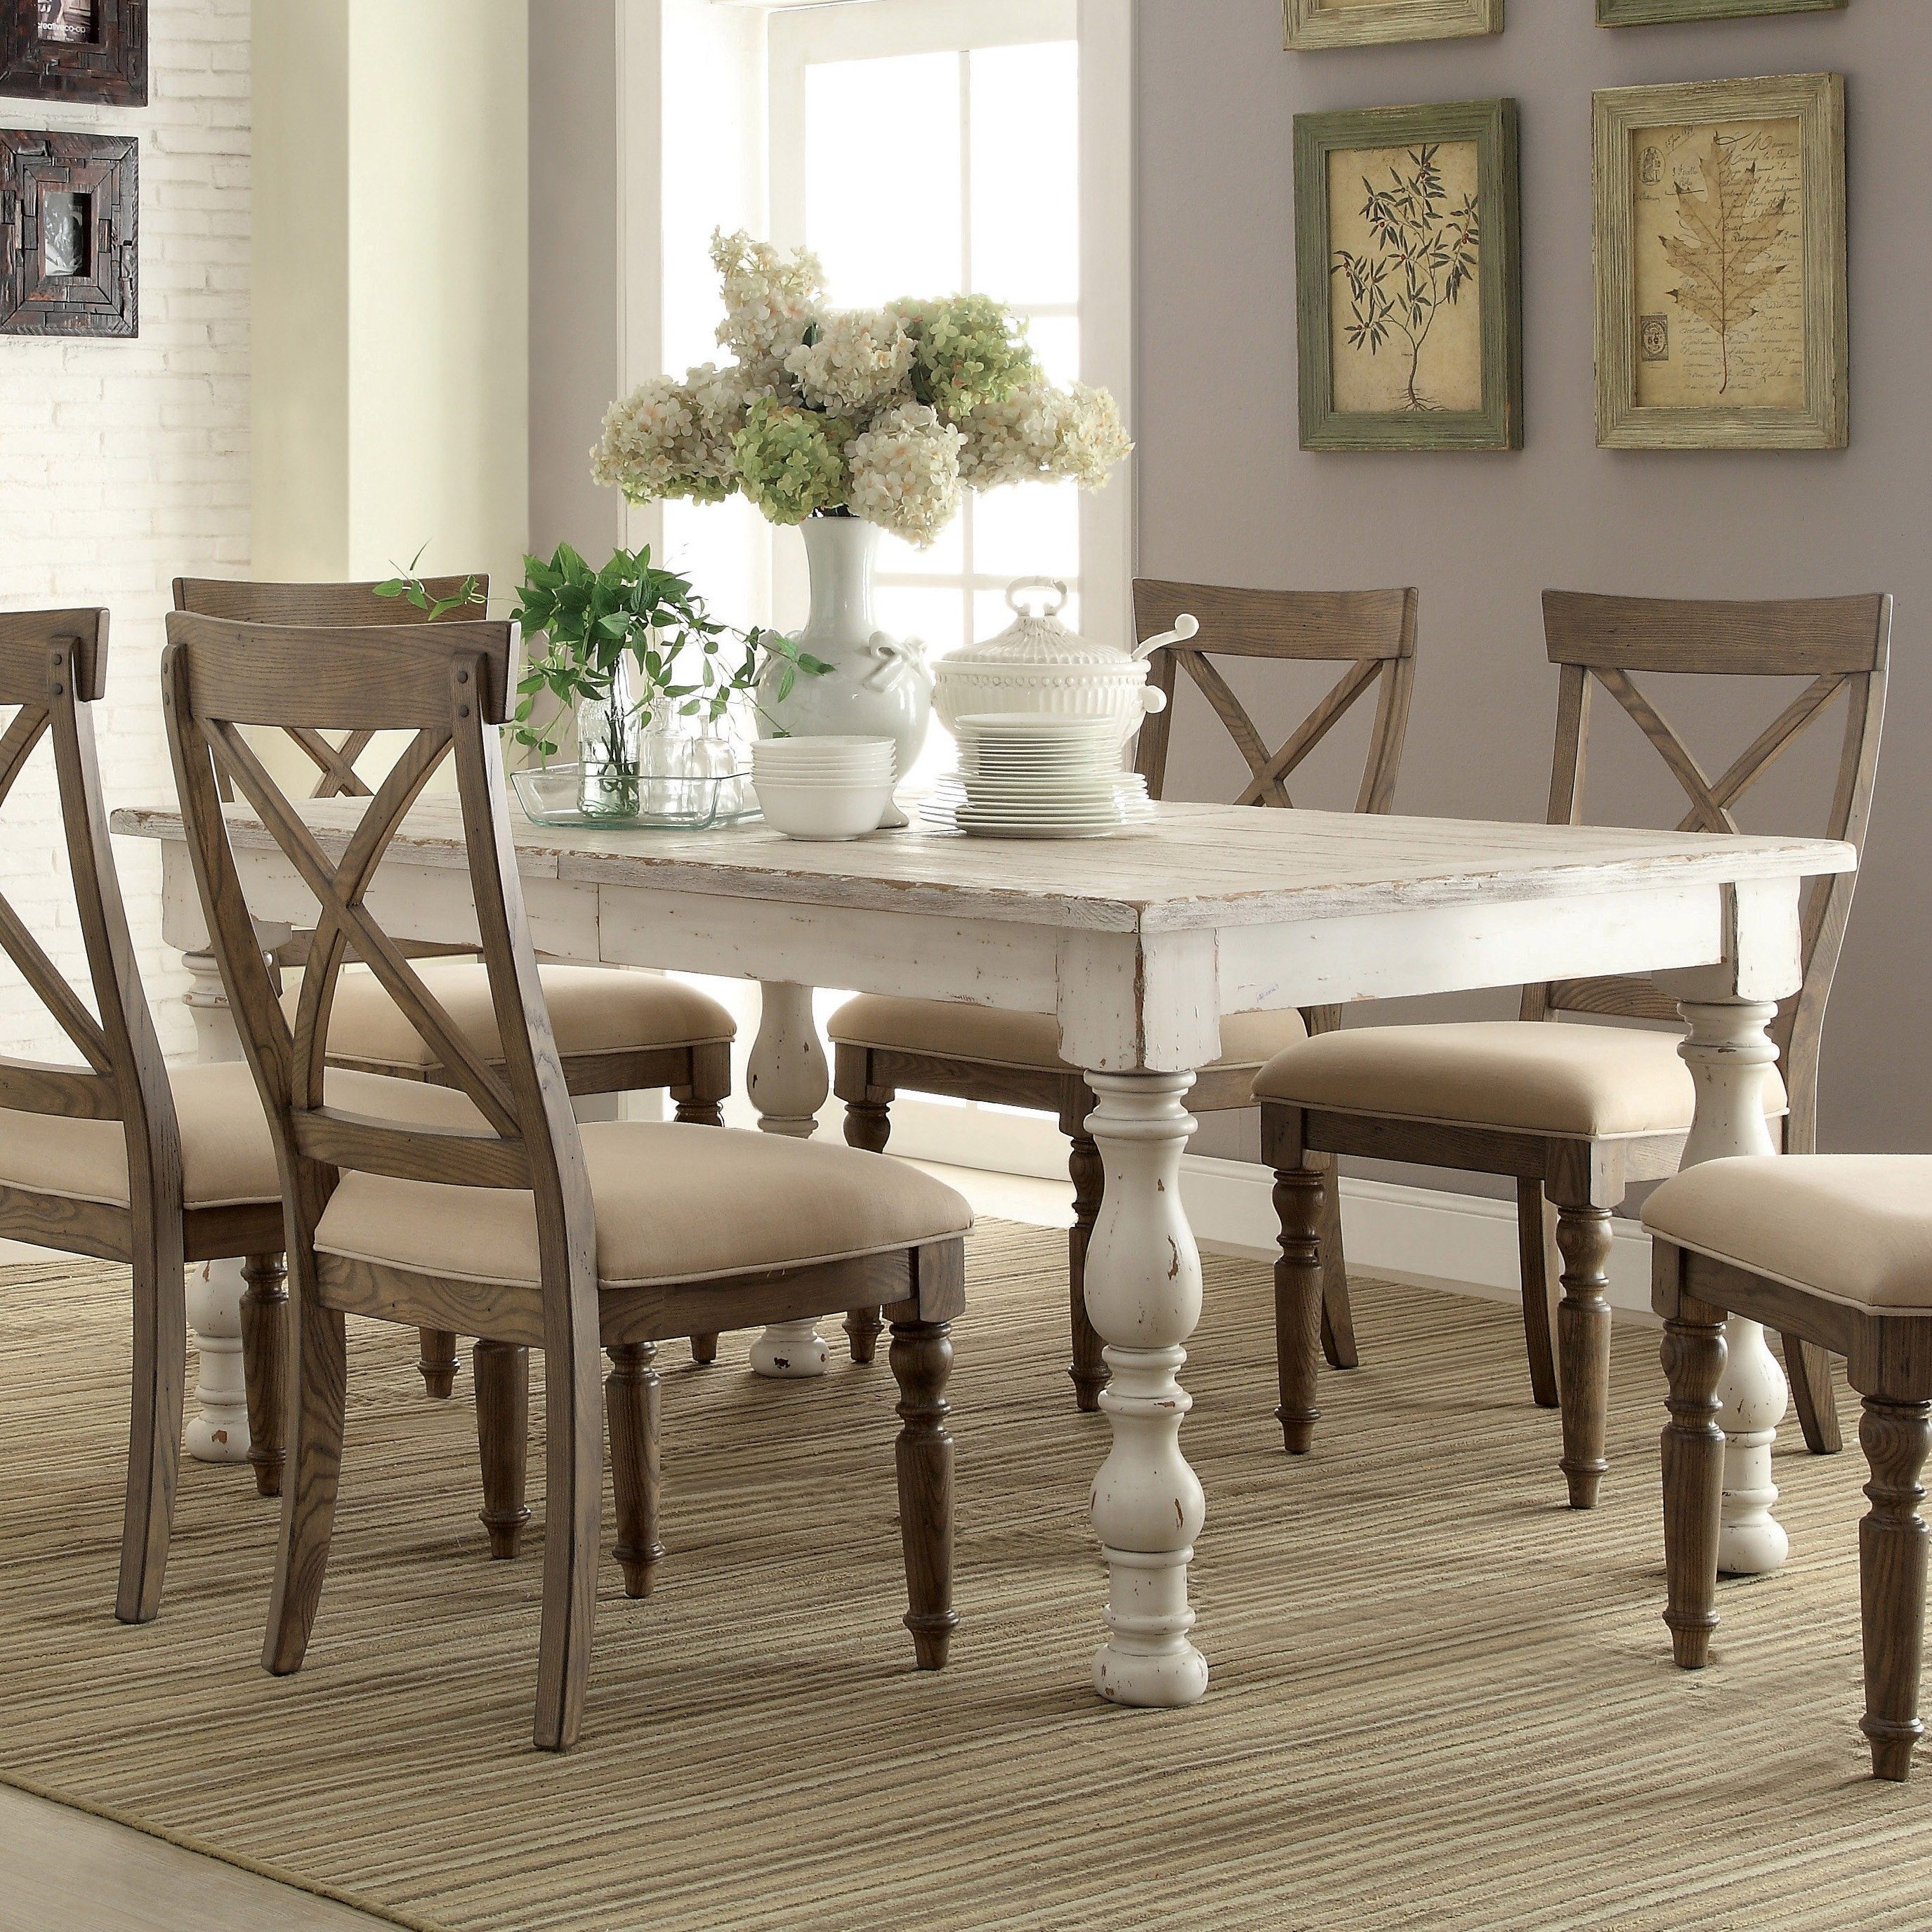 dining table and chairs in weathered worn white by riverside furniture